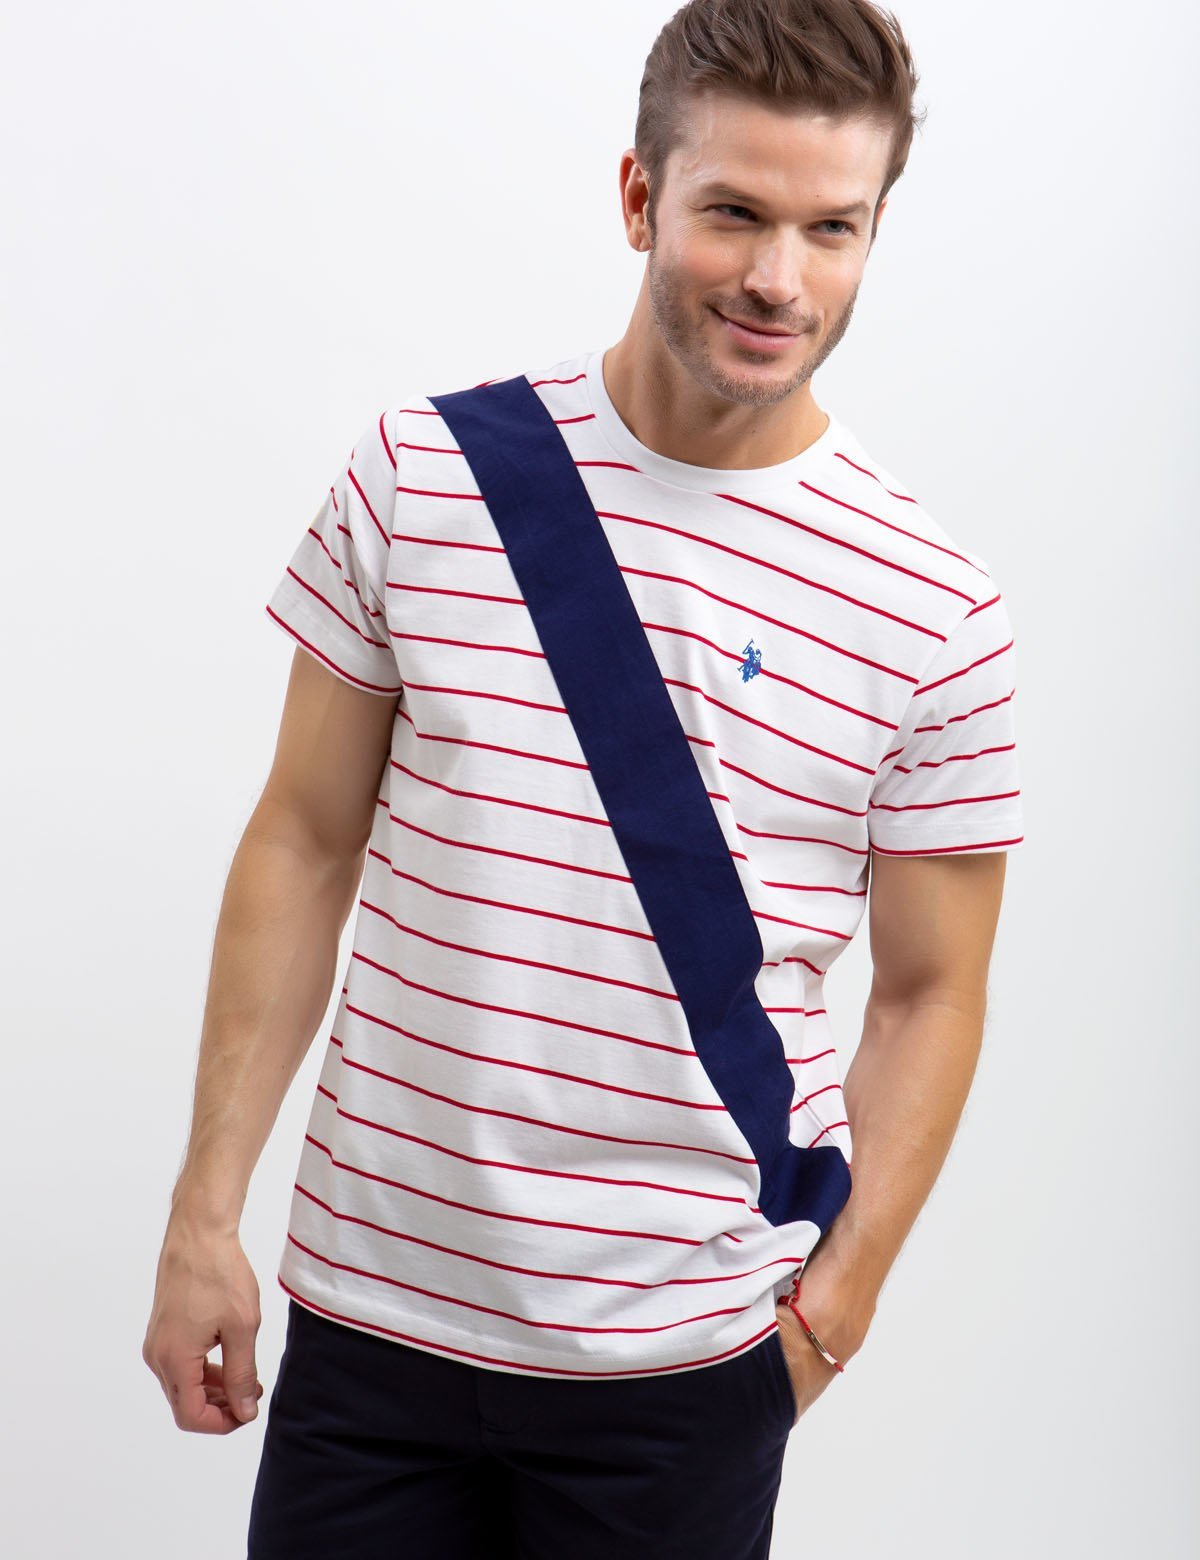 CREW NECK DIAGONAL STRIPED TEE - U.S. Polo Assn.